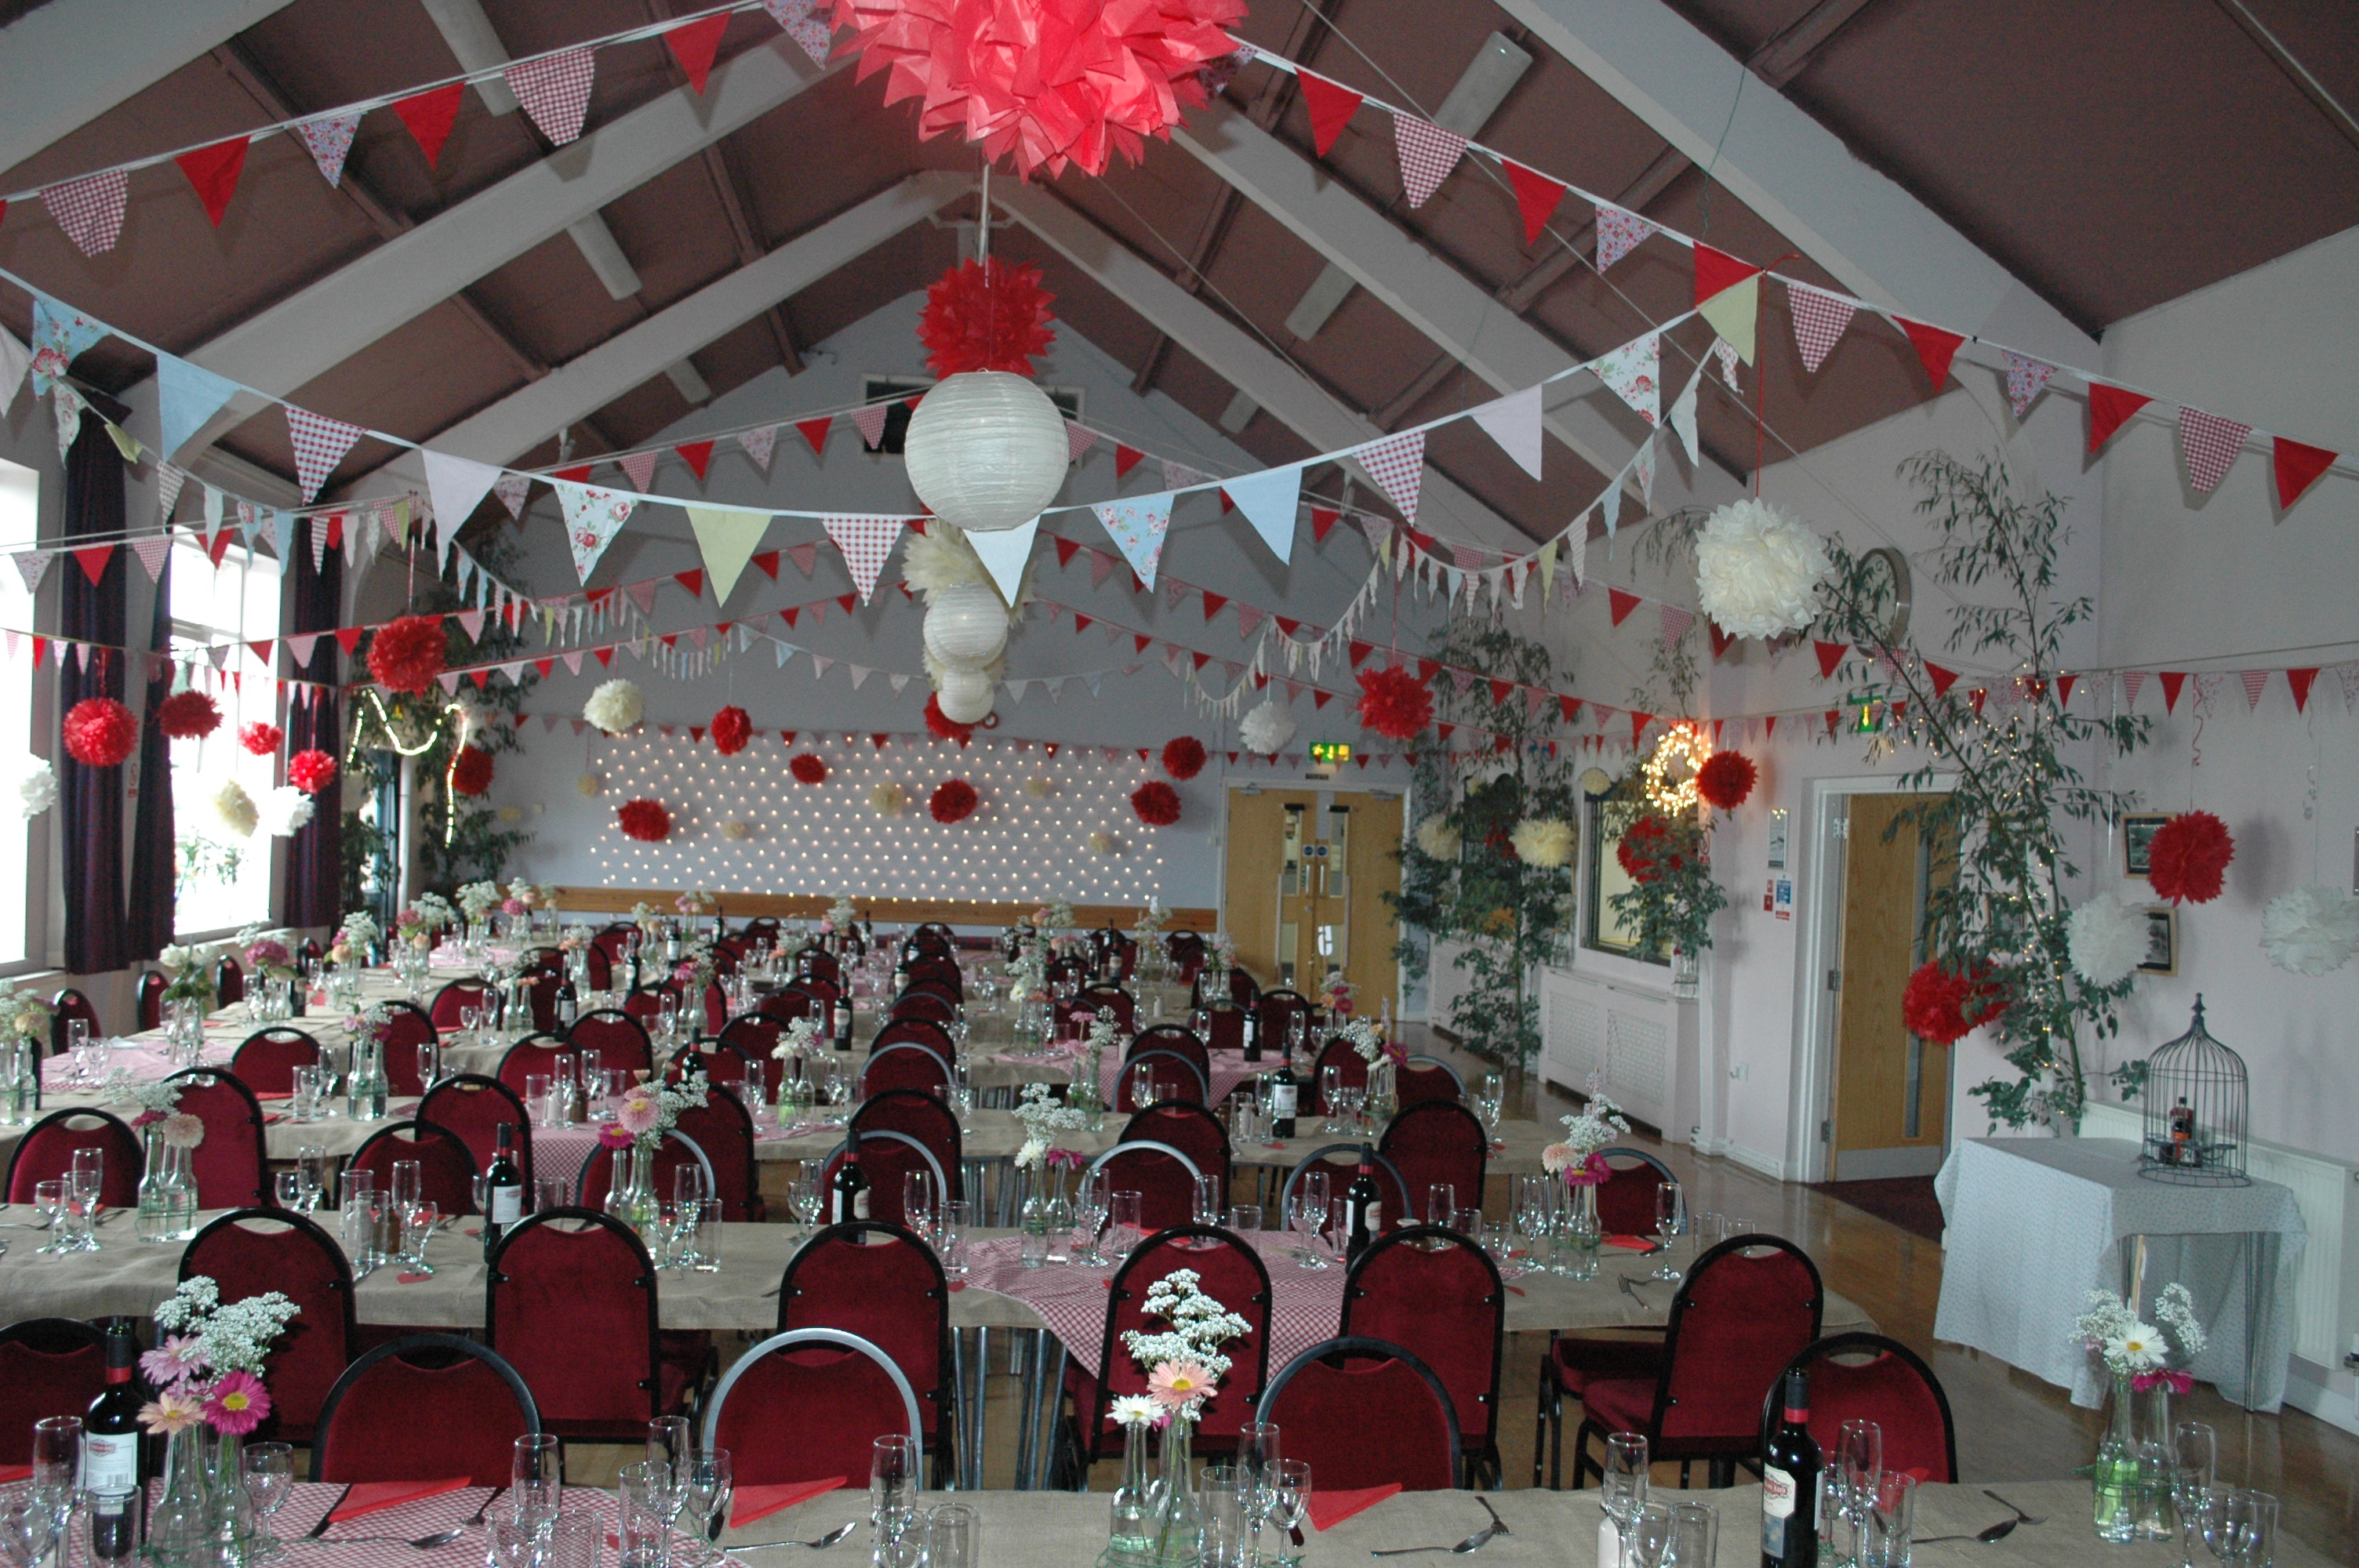 Ashover Parish Hall transformed